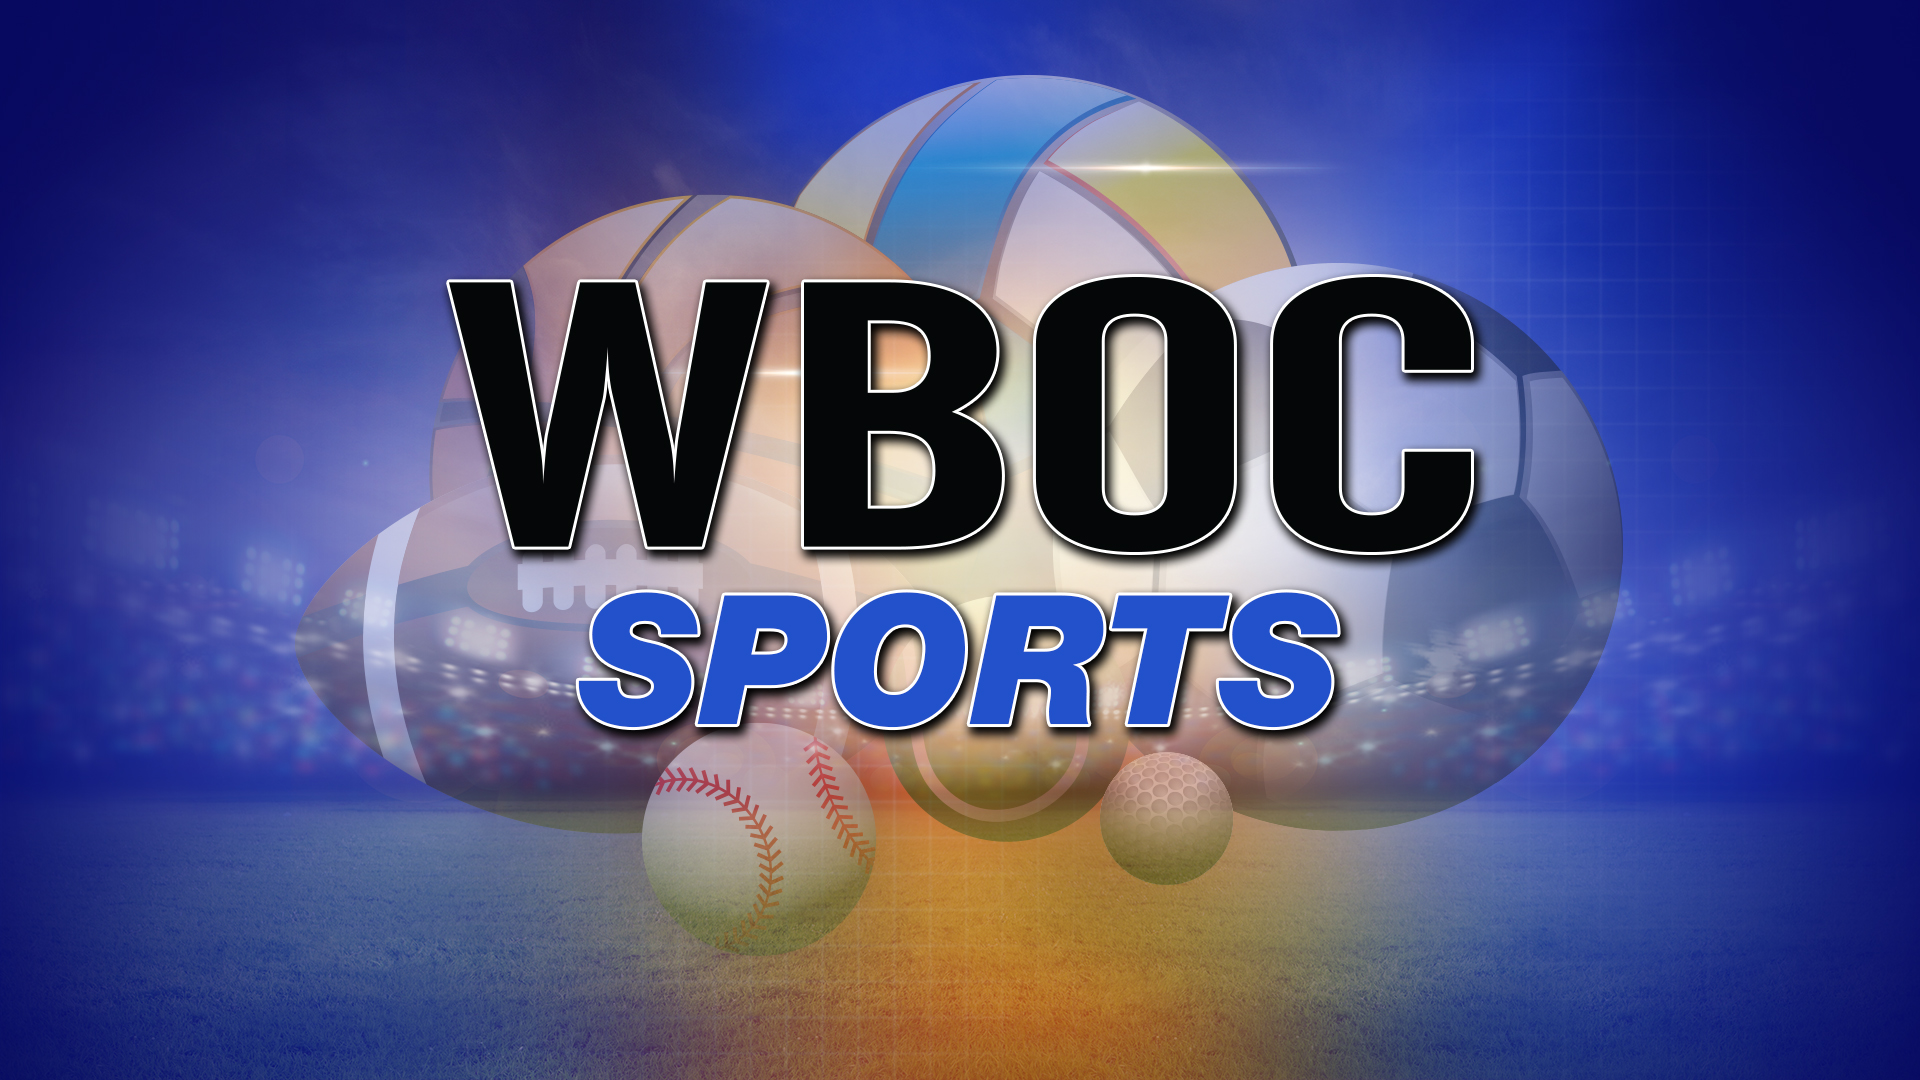 WBOC Sports Report – Tuesday, September 29, 2015